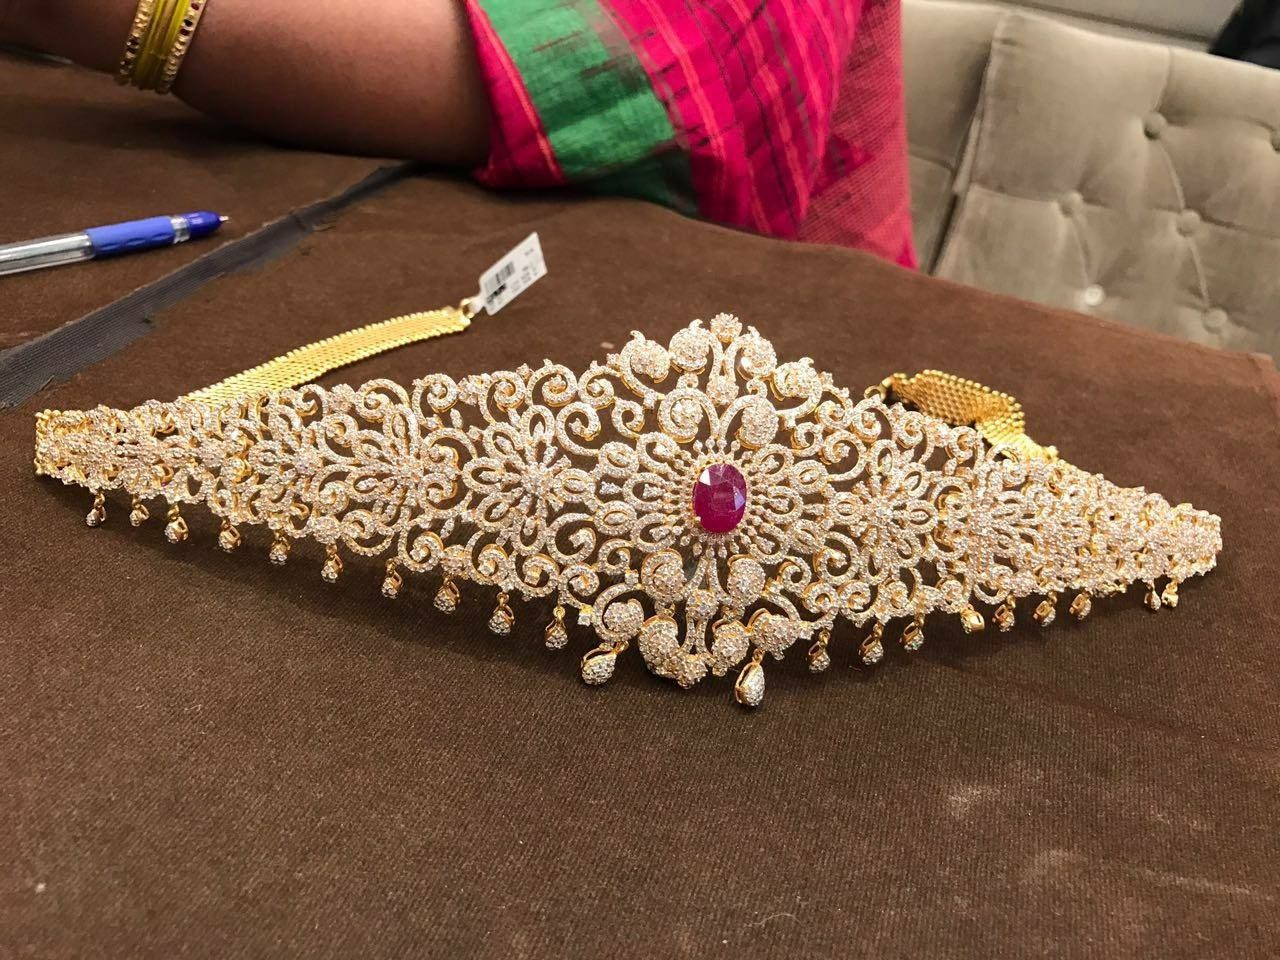 Gold vaddanam oddiyanam kammarpatta waisbelt designs south indian - Dazzling Diamond Waist Belts Photo Vaddanam Pinterest Diamond Latest Jewellery And Antique Jewellery